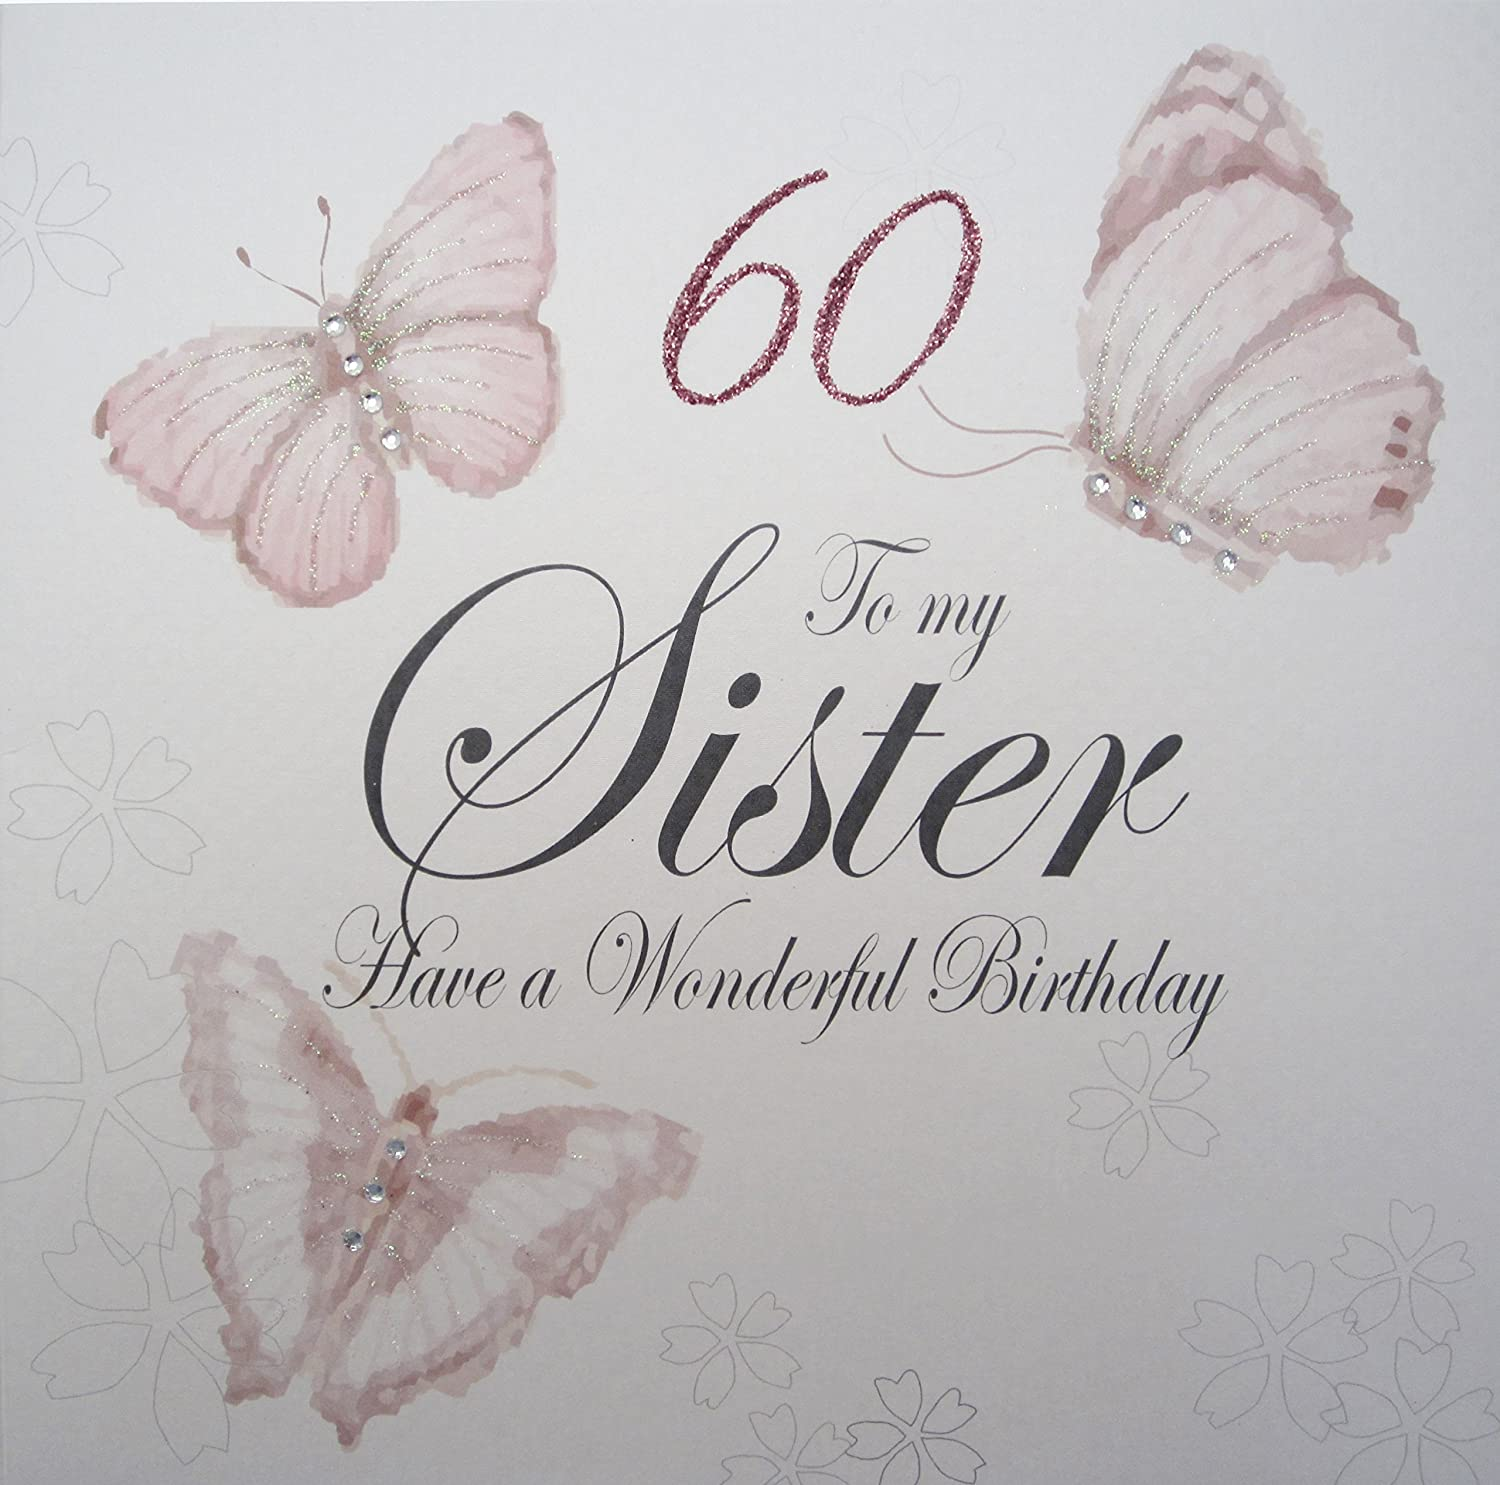 WHITE COTTON CARDS XPD30 60 Large Vitage Butterflies, 60 To My Sister Have  A Wonderful Birthday Handmade 60th Birthday Card: Amazon.co.uk: Kitchen U0026  Home